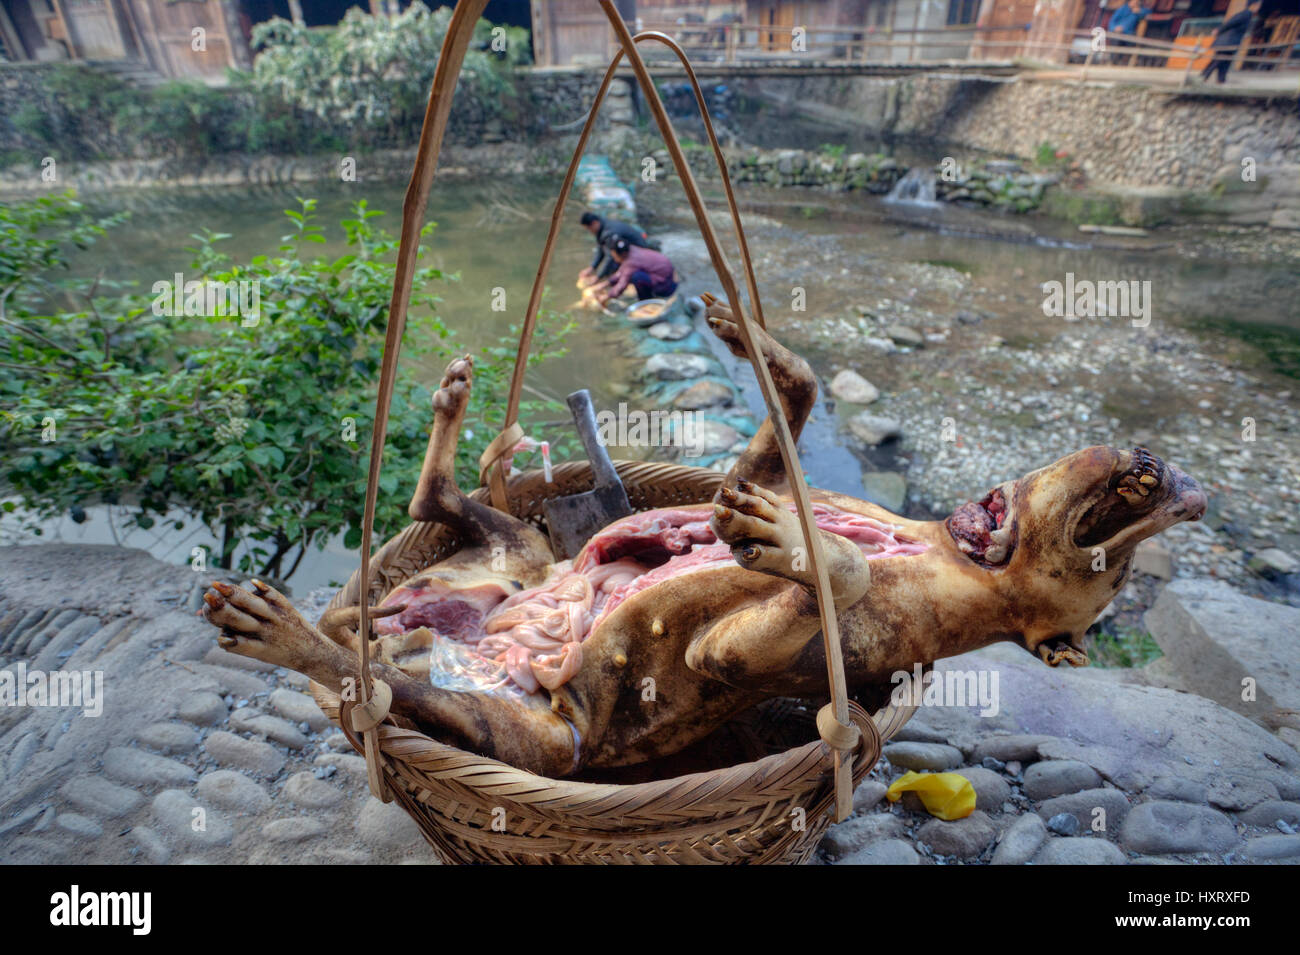 Zhaoxing Dong Village, Guizhou Province, China -  April 9, 2010: Carcass slaughtered and eviscerated dog is in a Stock Photo